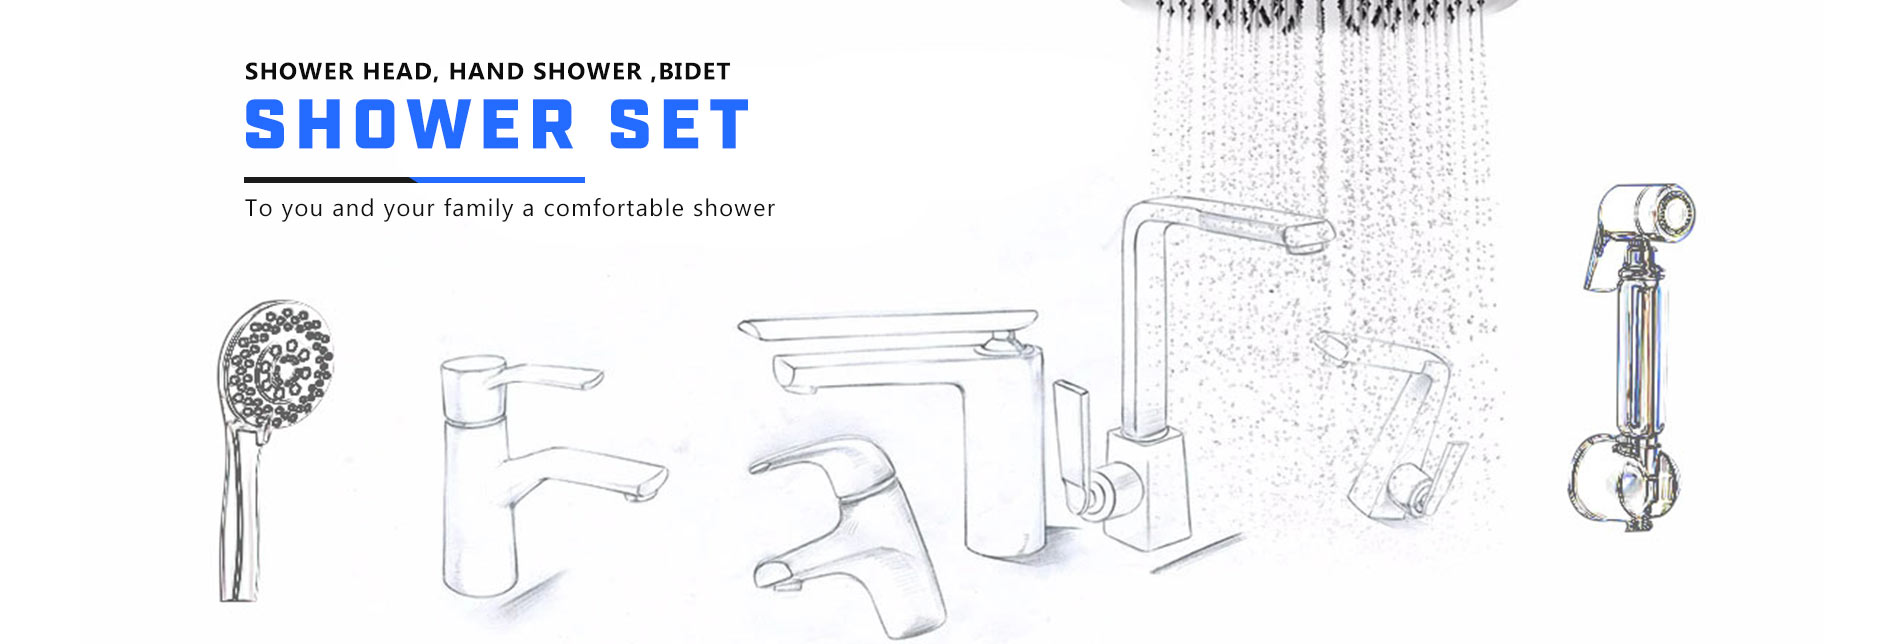 hand shower shattaf rainfall shower head shower set shower faucet  shower hose